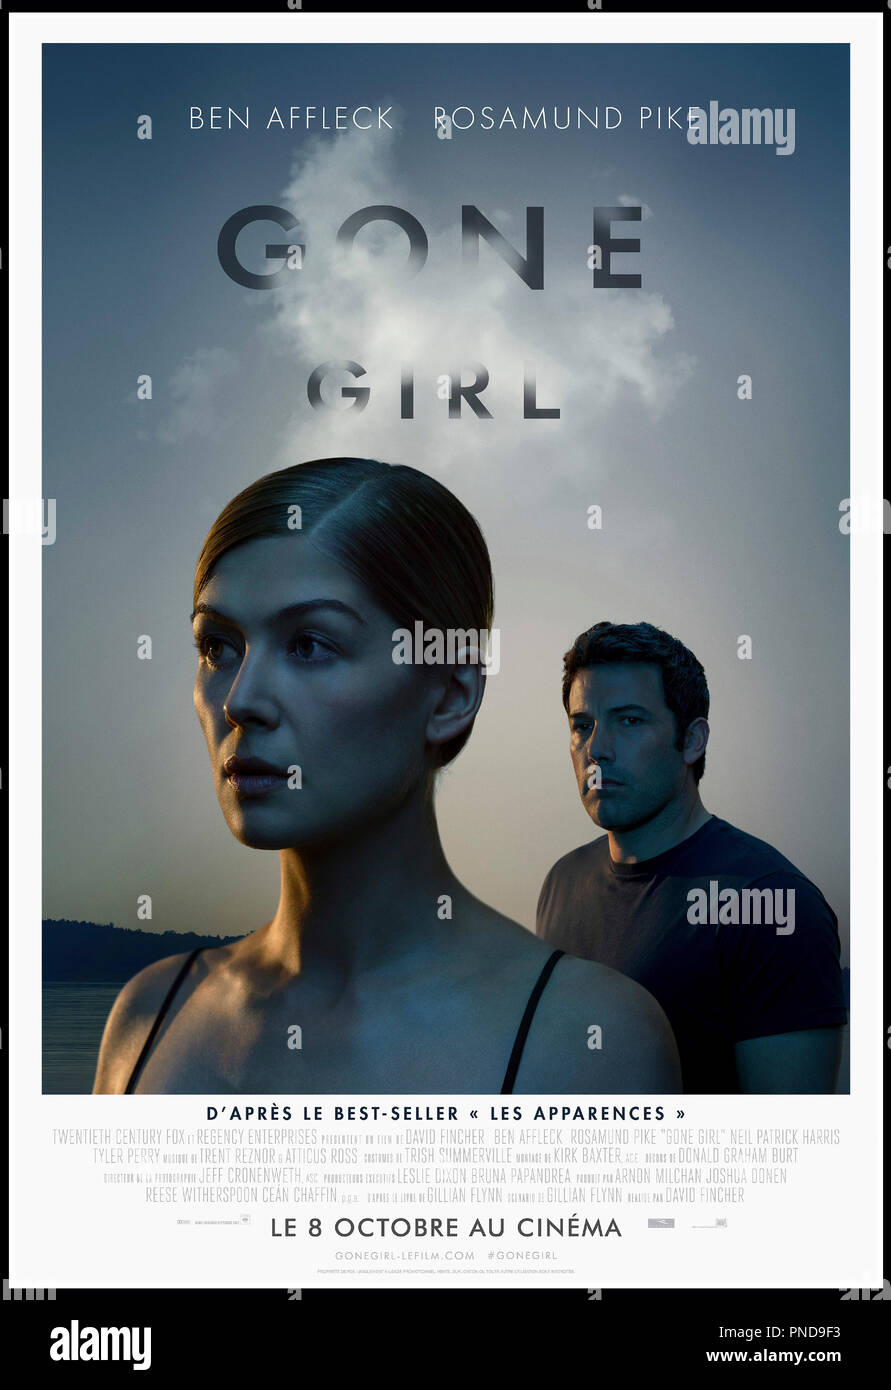 Prod DB © 20th Century Fox - New Regency Pictures - Pacific Standard / DR GONE GIRL de David Fincher 2014 USA affiche française avec Ben Affleck, Rosamund Pike d'apres le roman de Gillian Flynn - Stock Image